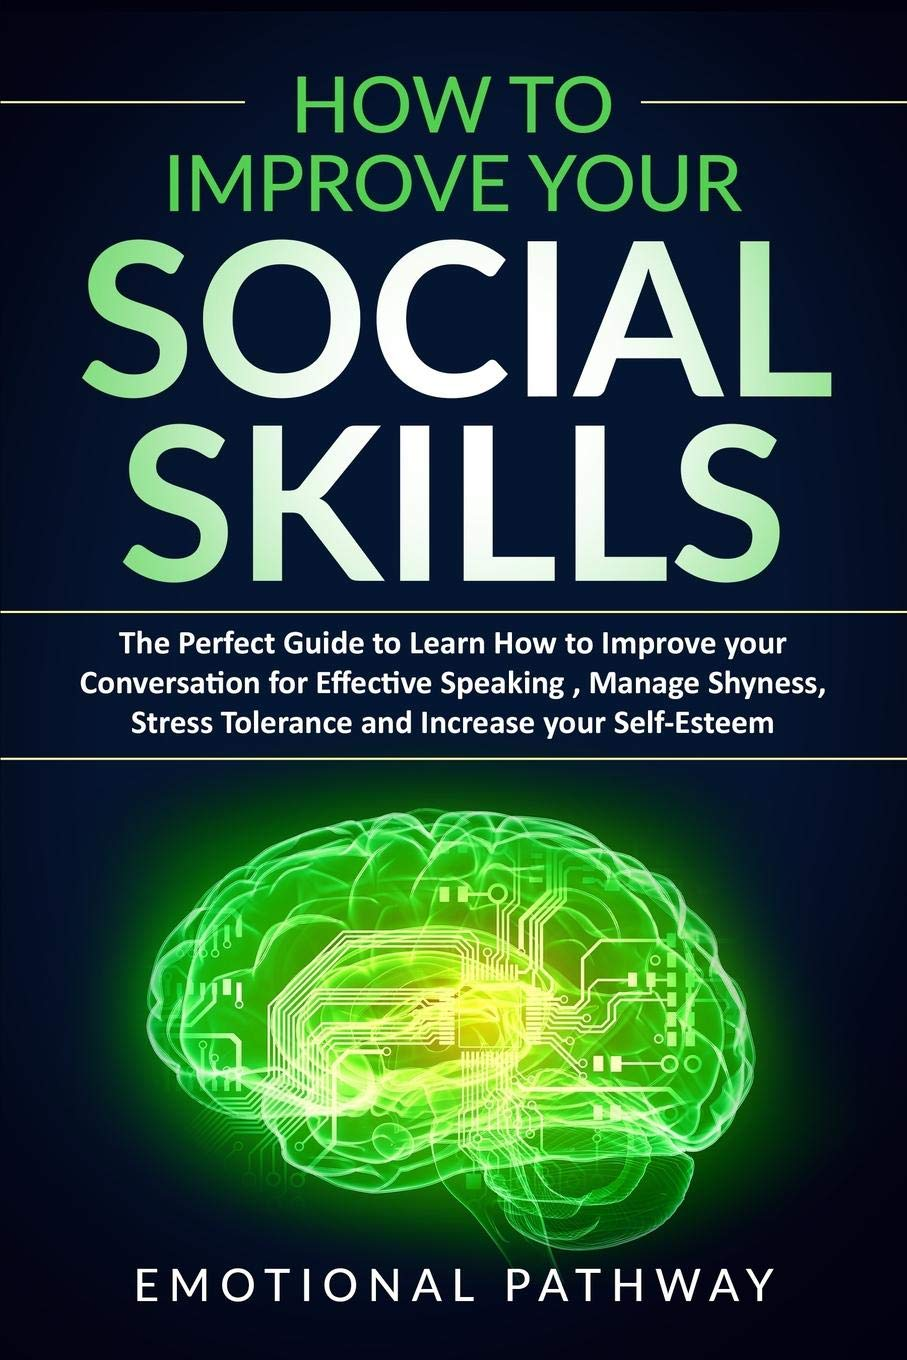 How Improve your Social Skills product image